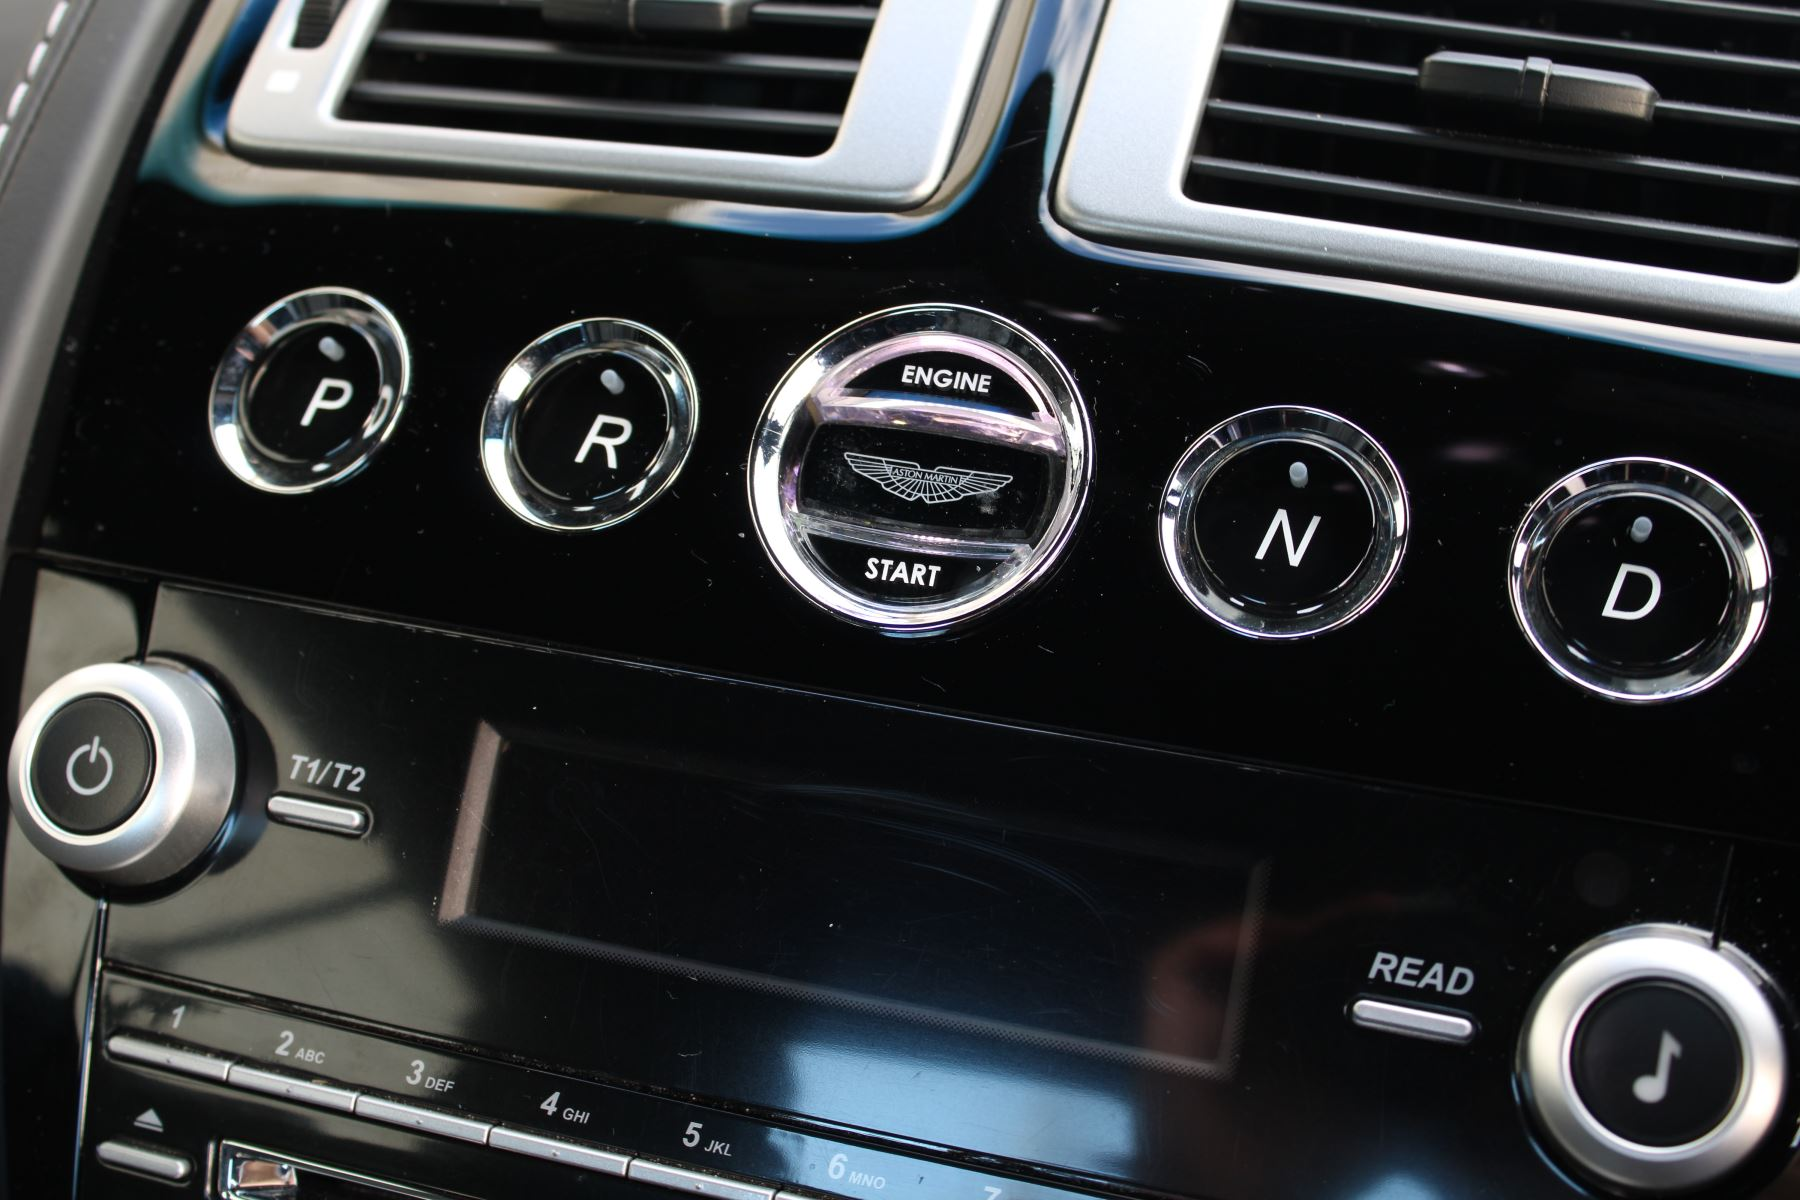 Aston Martin DBS V12 CARBON EDITION 2dr Touchtronic image 17